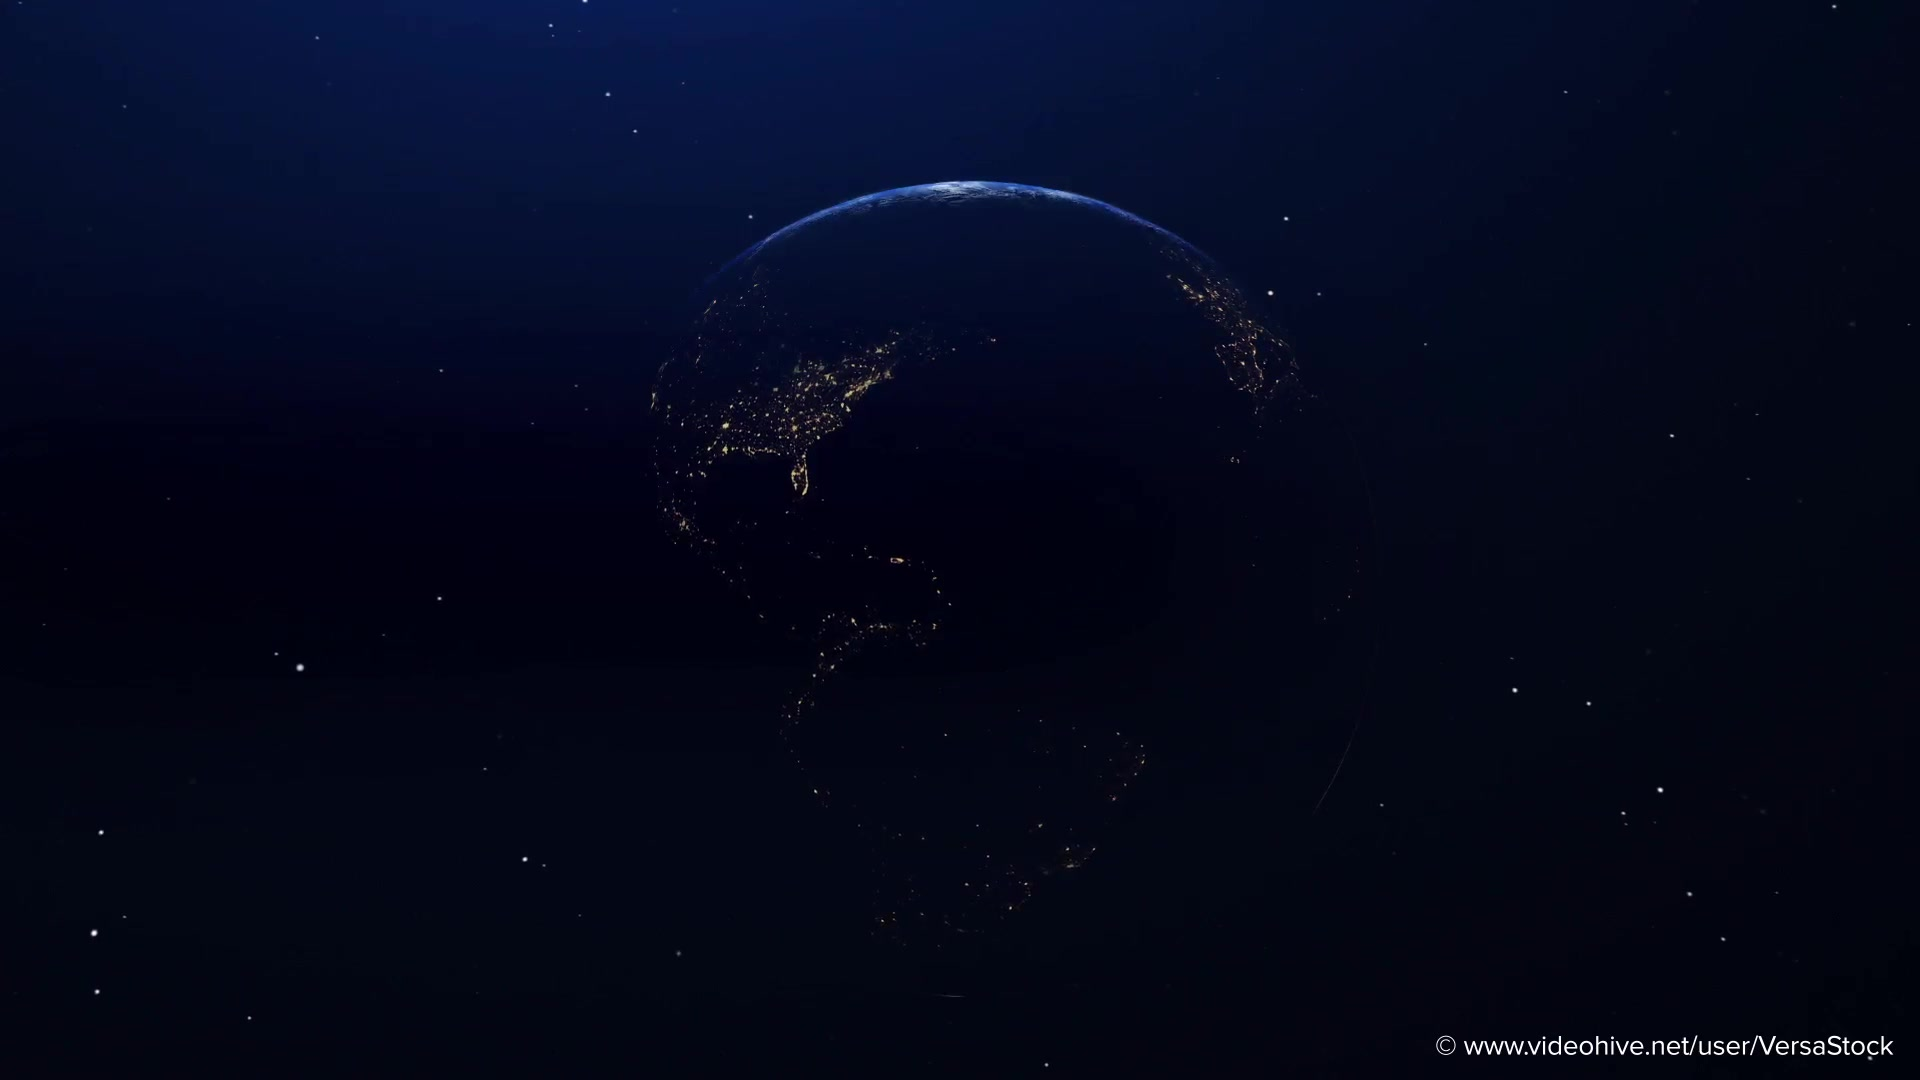 Global Economics From Space Infographics Videohive 25031384 After Effects Image 12